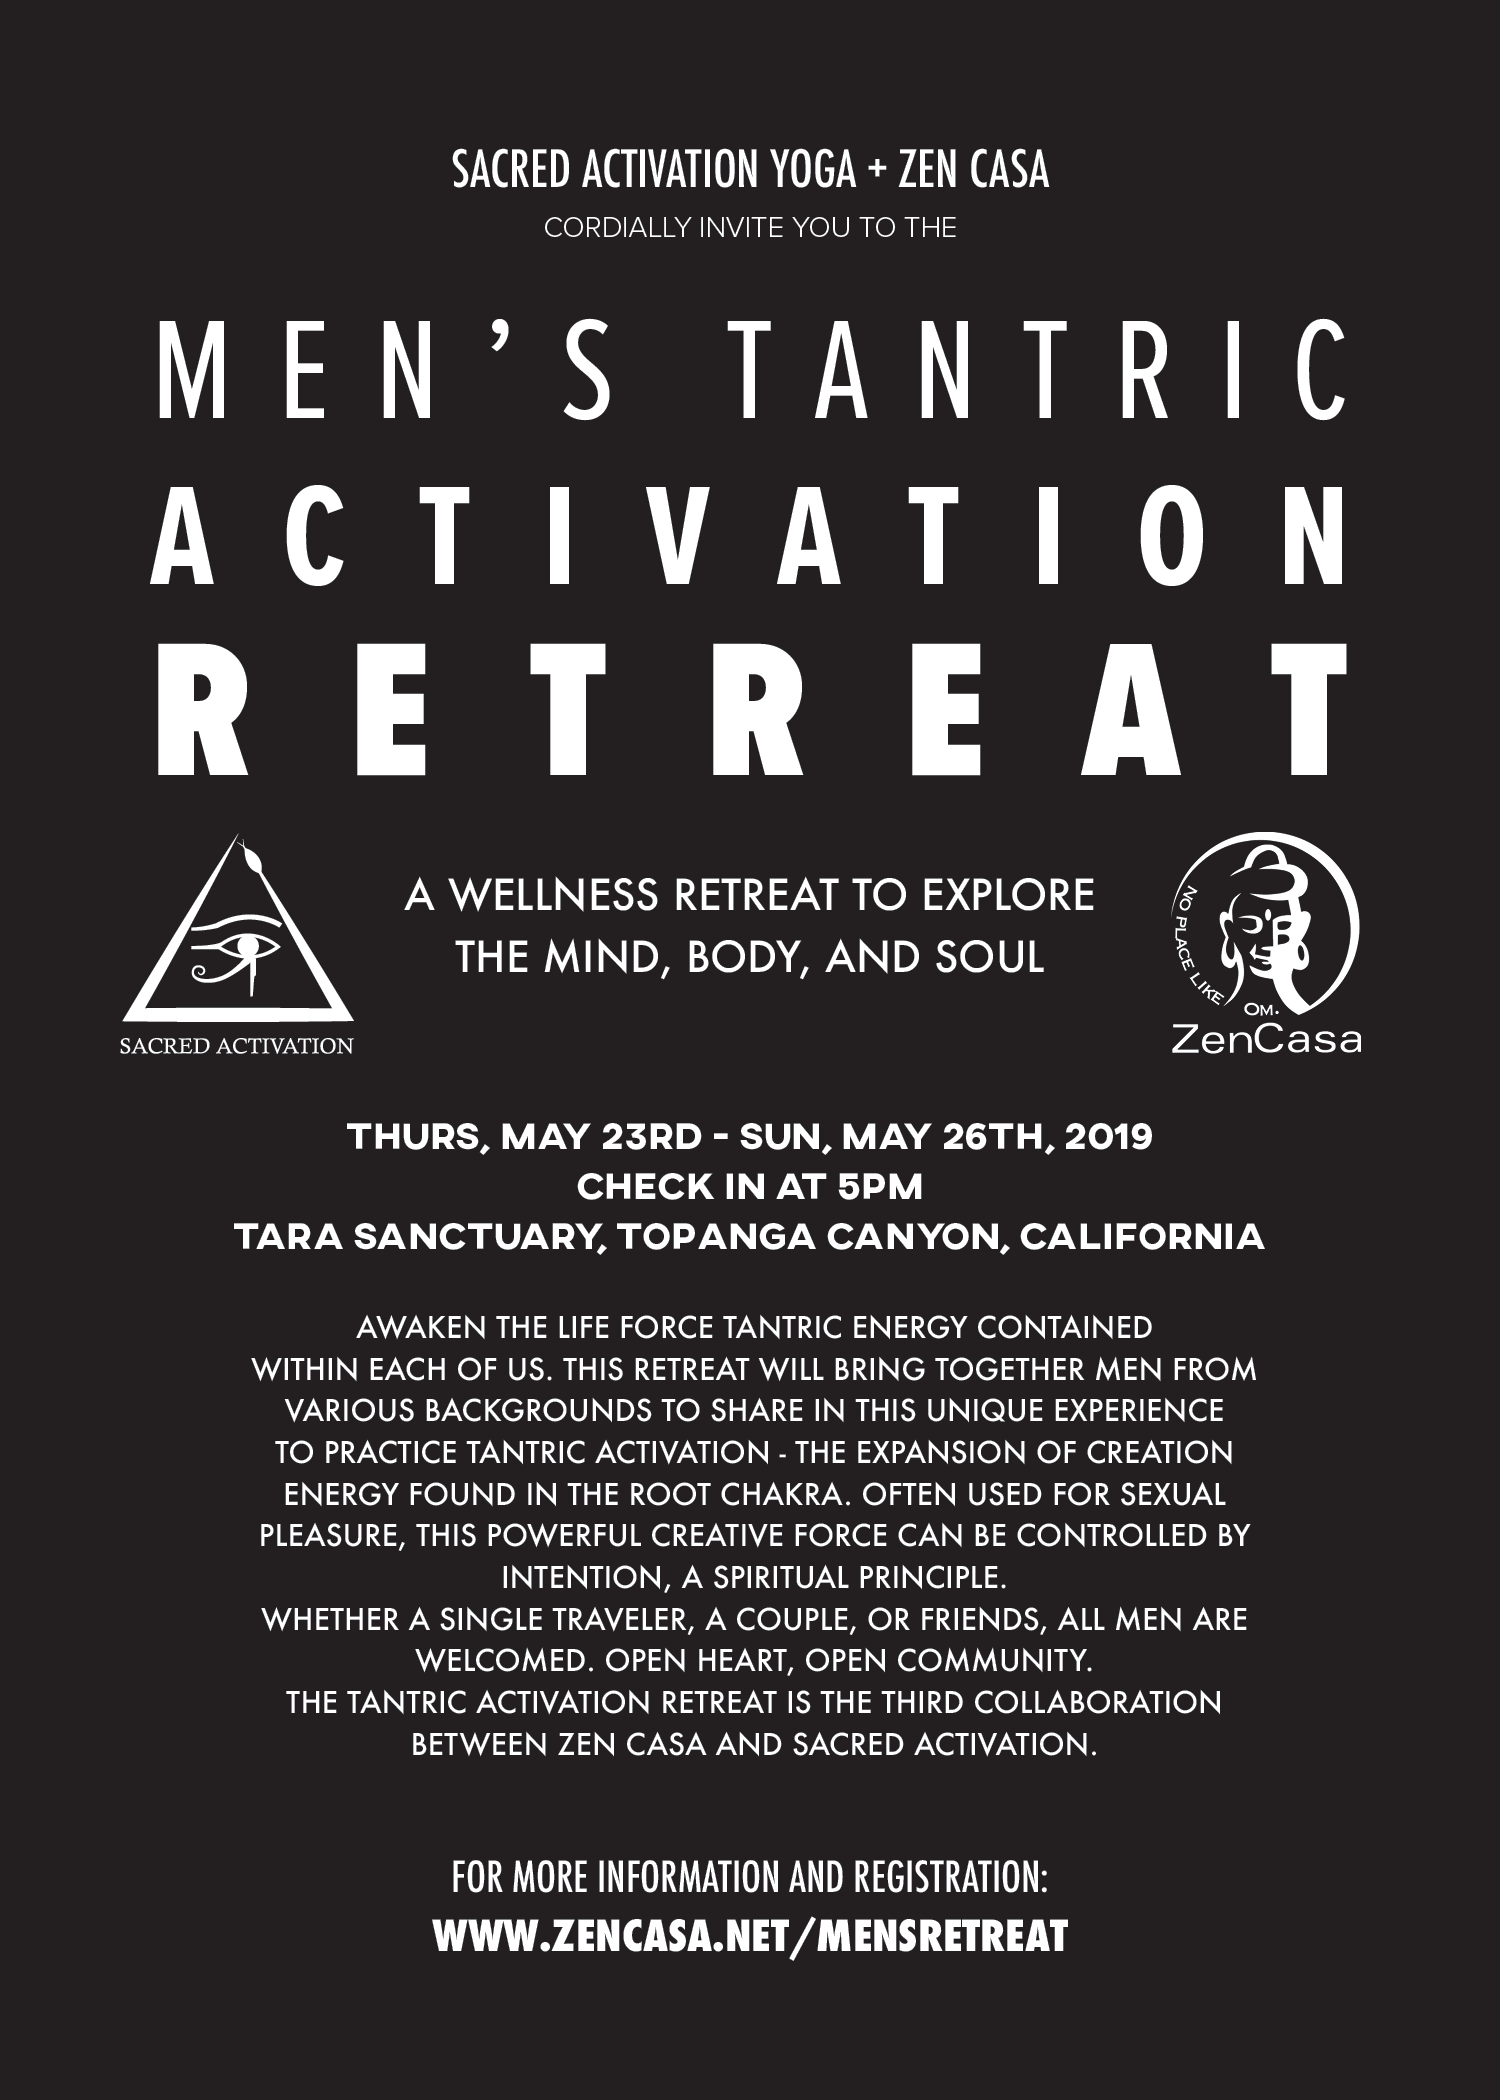 1_16_19 FINAL FRONT Mens Tantric Activation Retreat.png